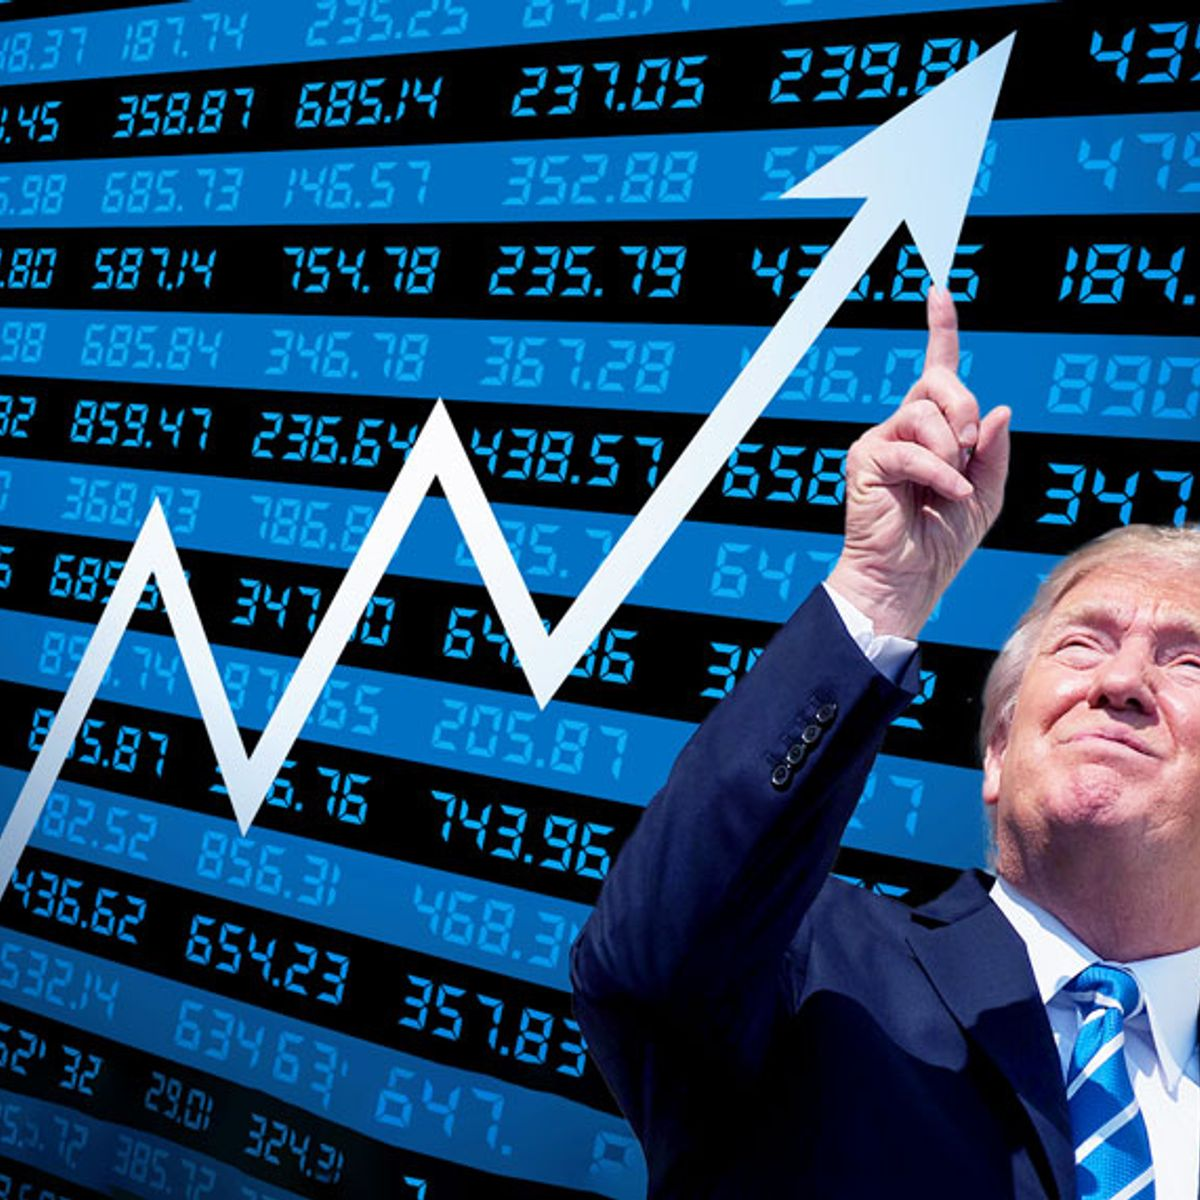 Are Trump and his circle manipulating the markets for personal gain? Here's the evidence